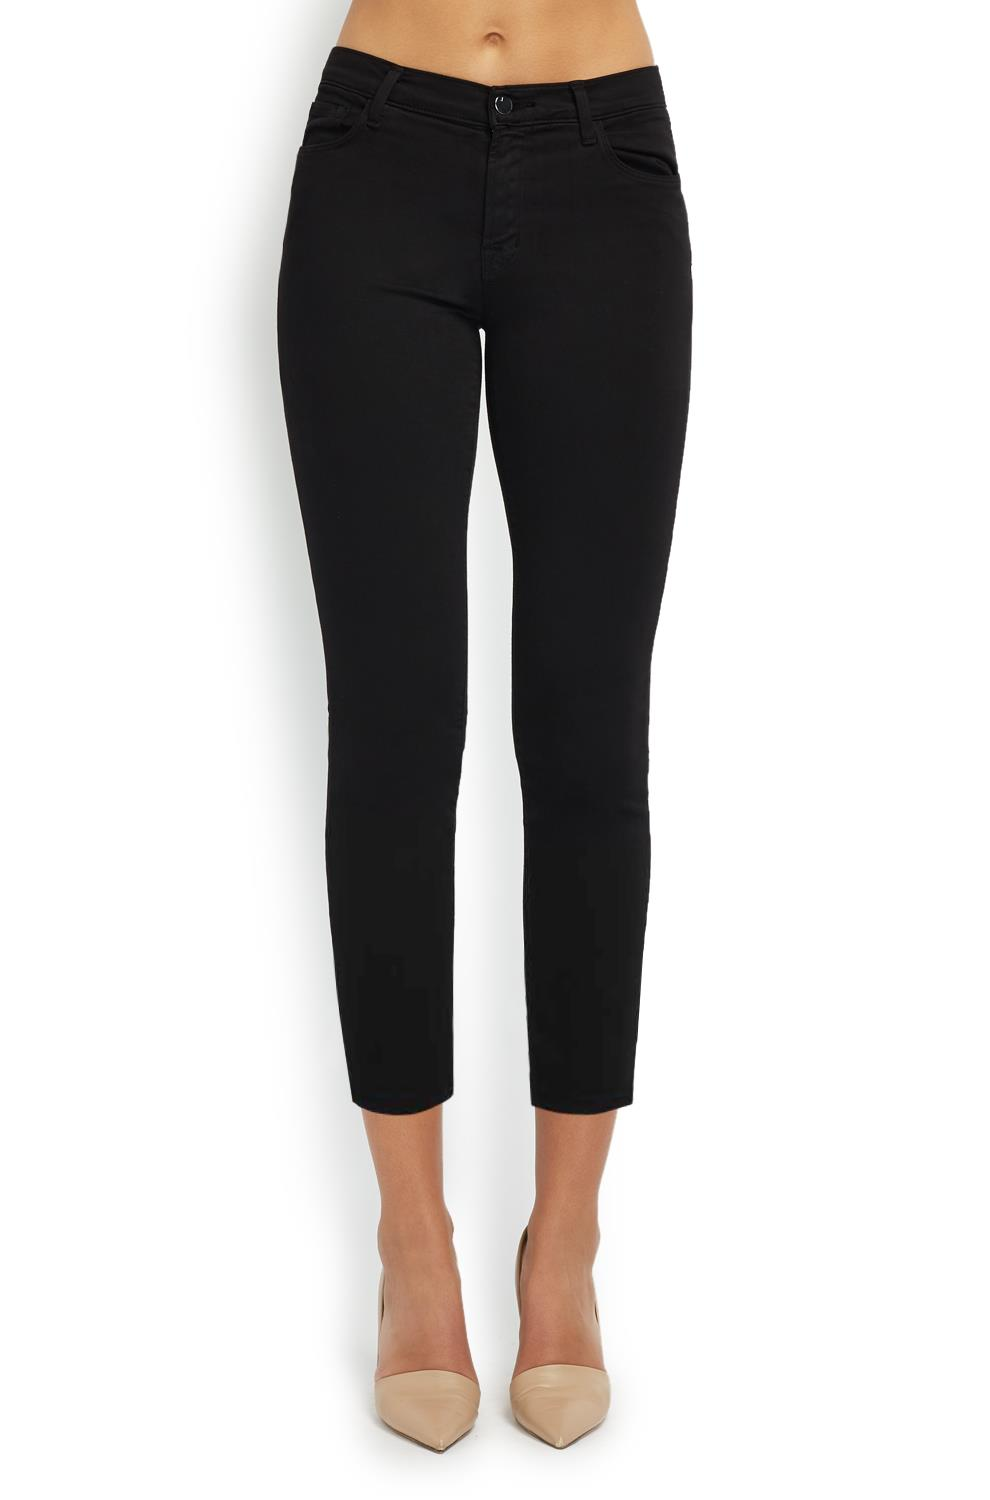 cropped black jeans outfit